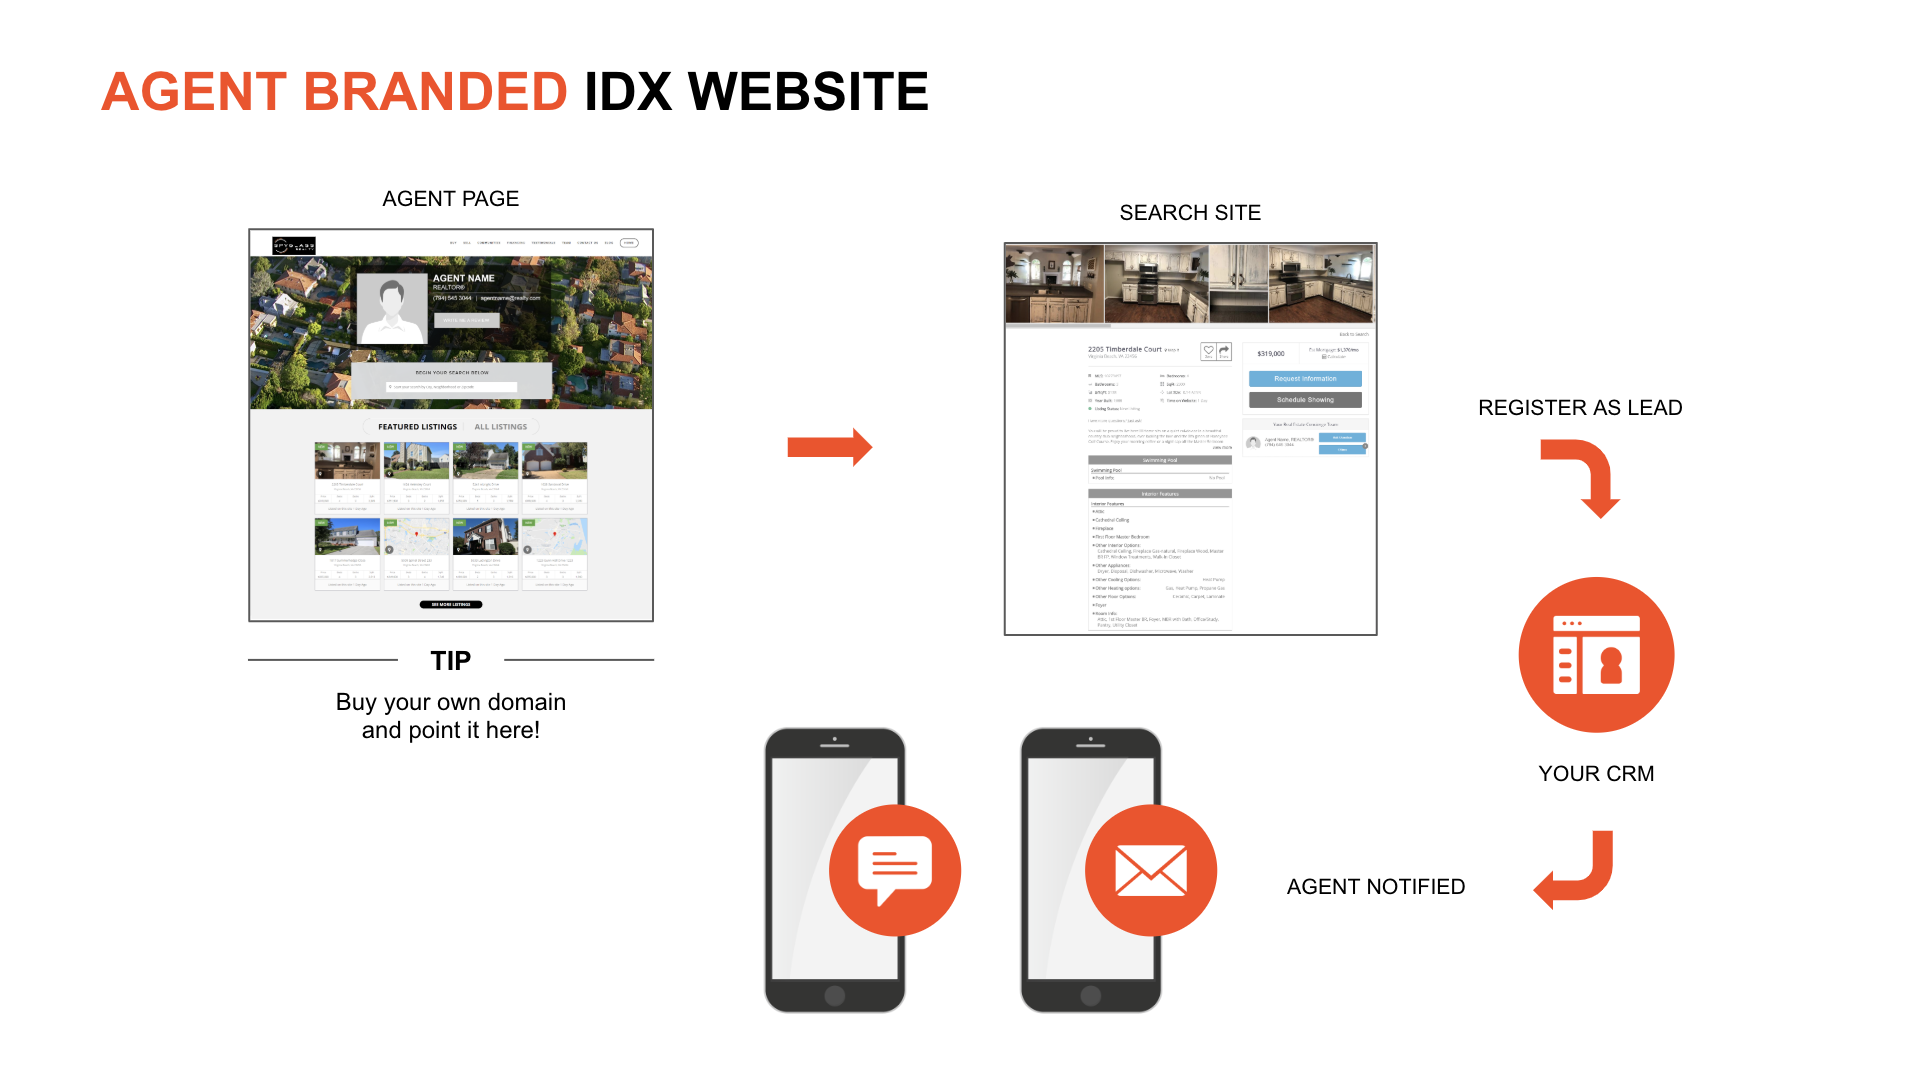 agent branded idx website